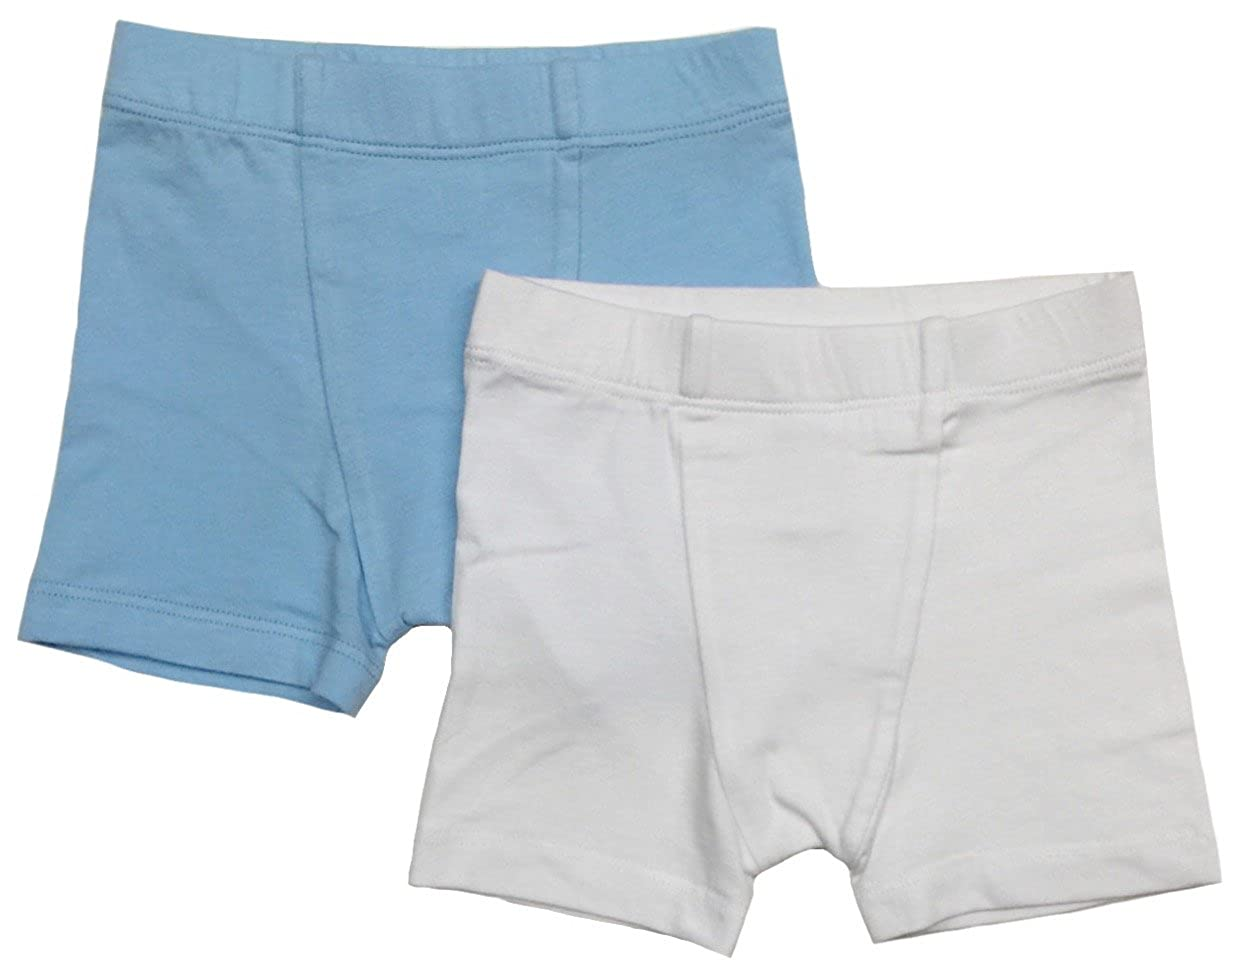 Esme Boys 2pcs Boxer Briefs Underwear (Little Boys: XS, S, M & Big Boys: L, XL) B007